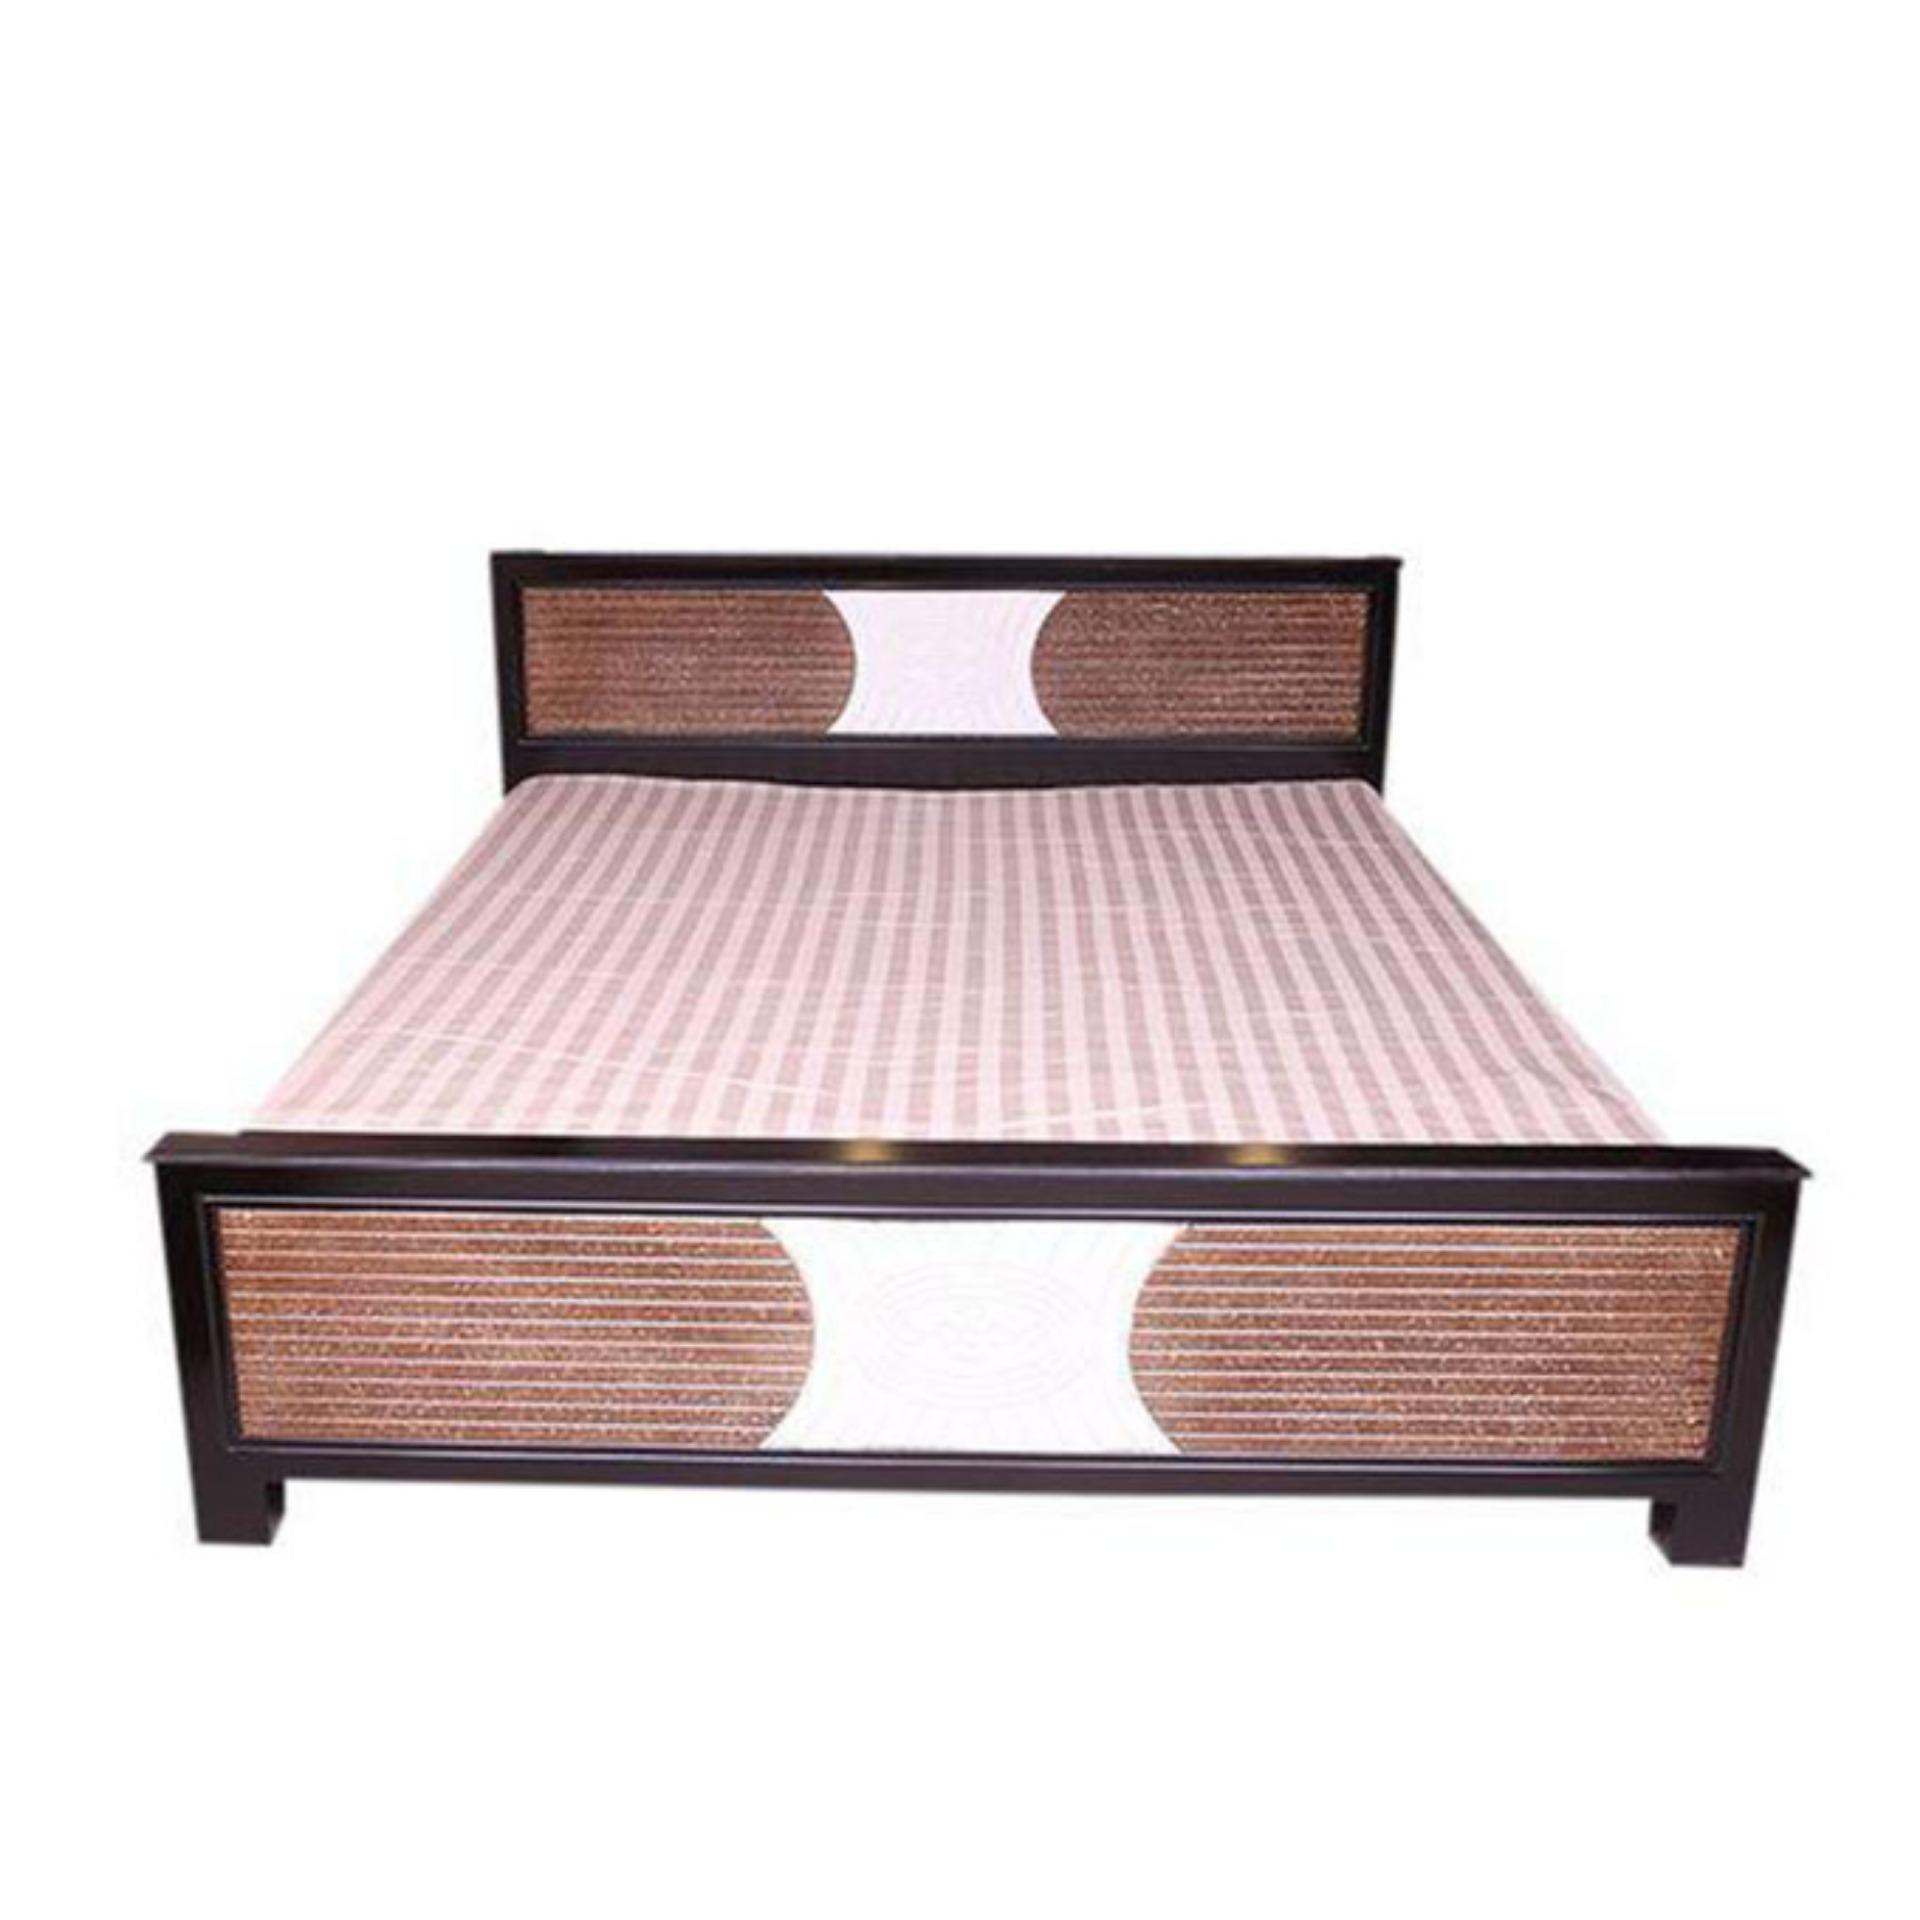 Malaysian Processed Wood Bed - Chocolate and Brown